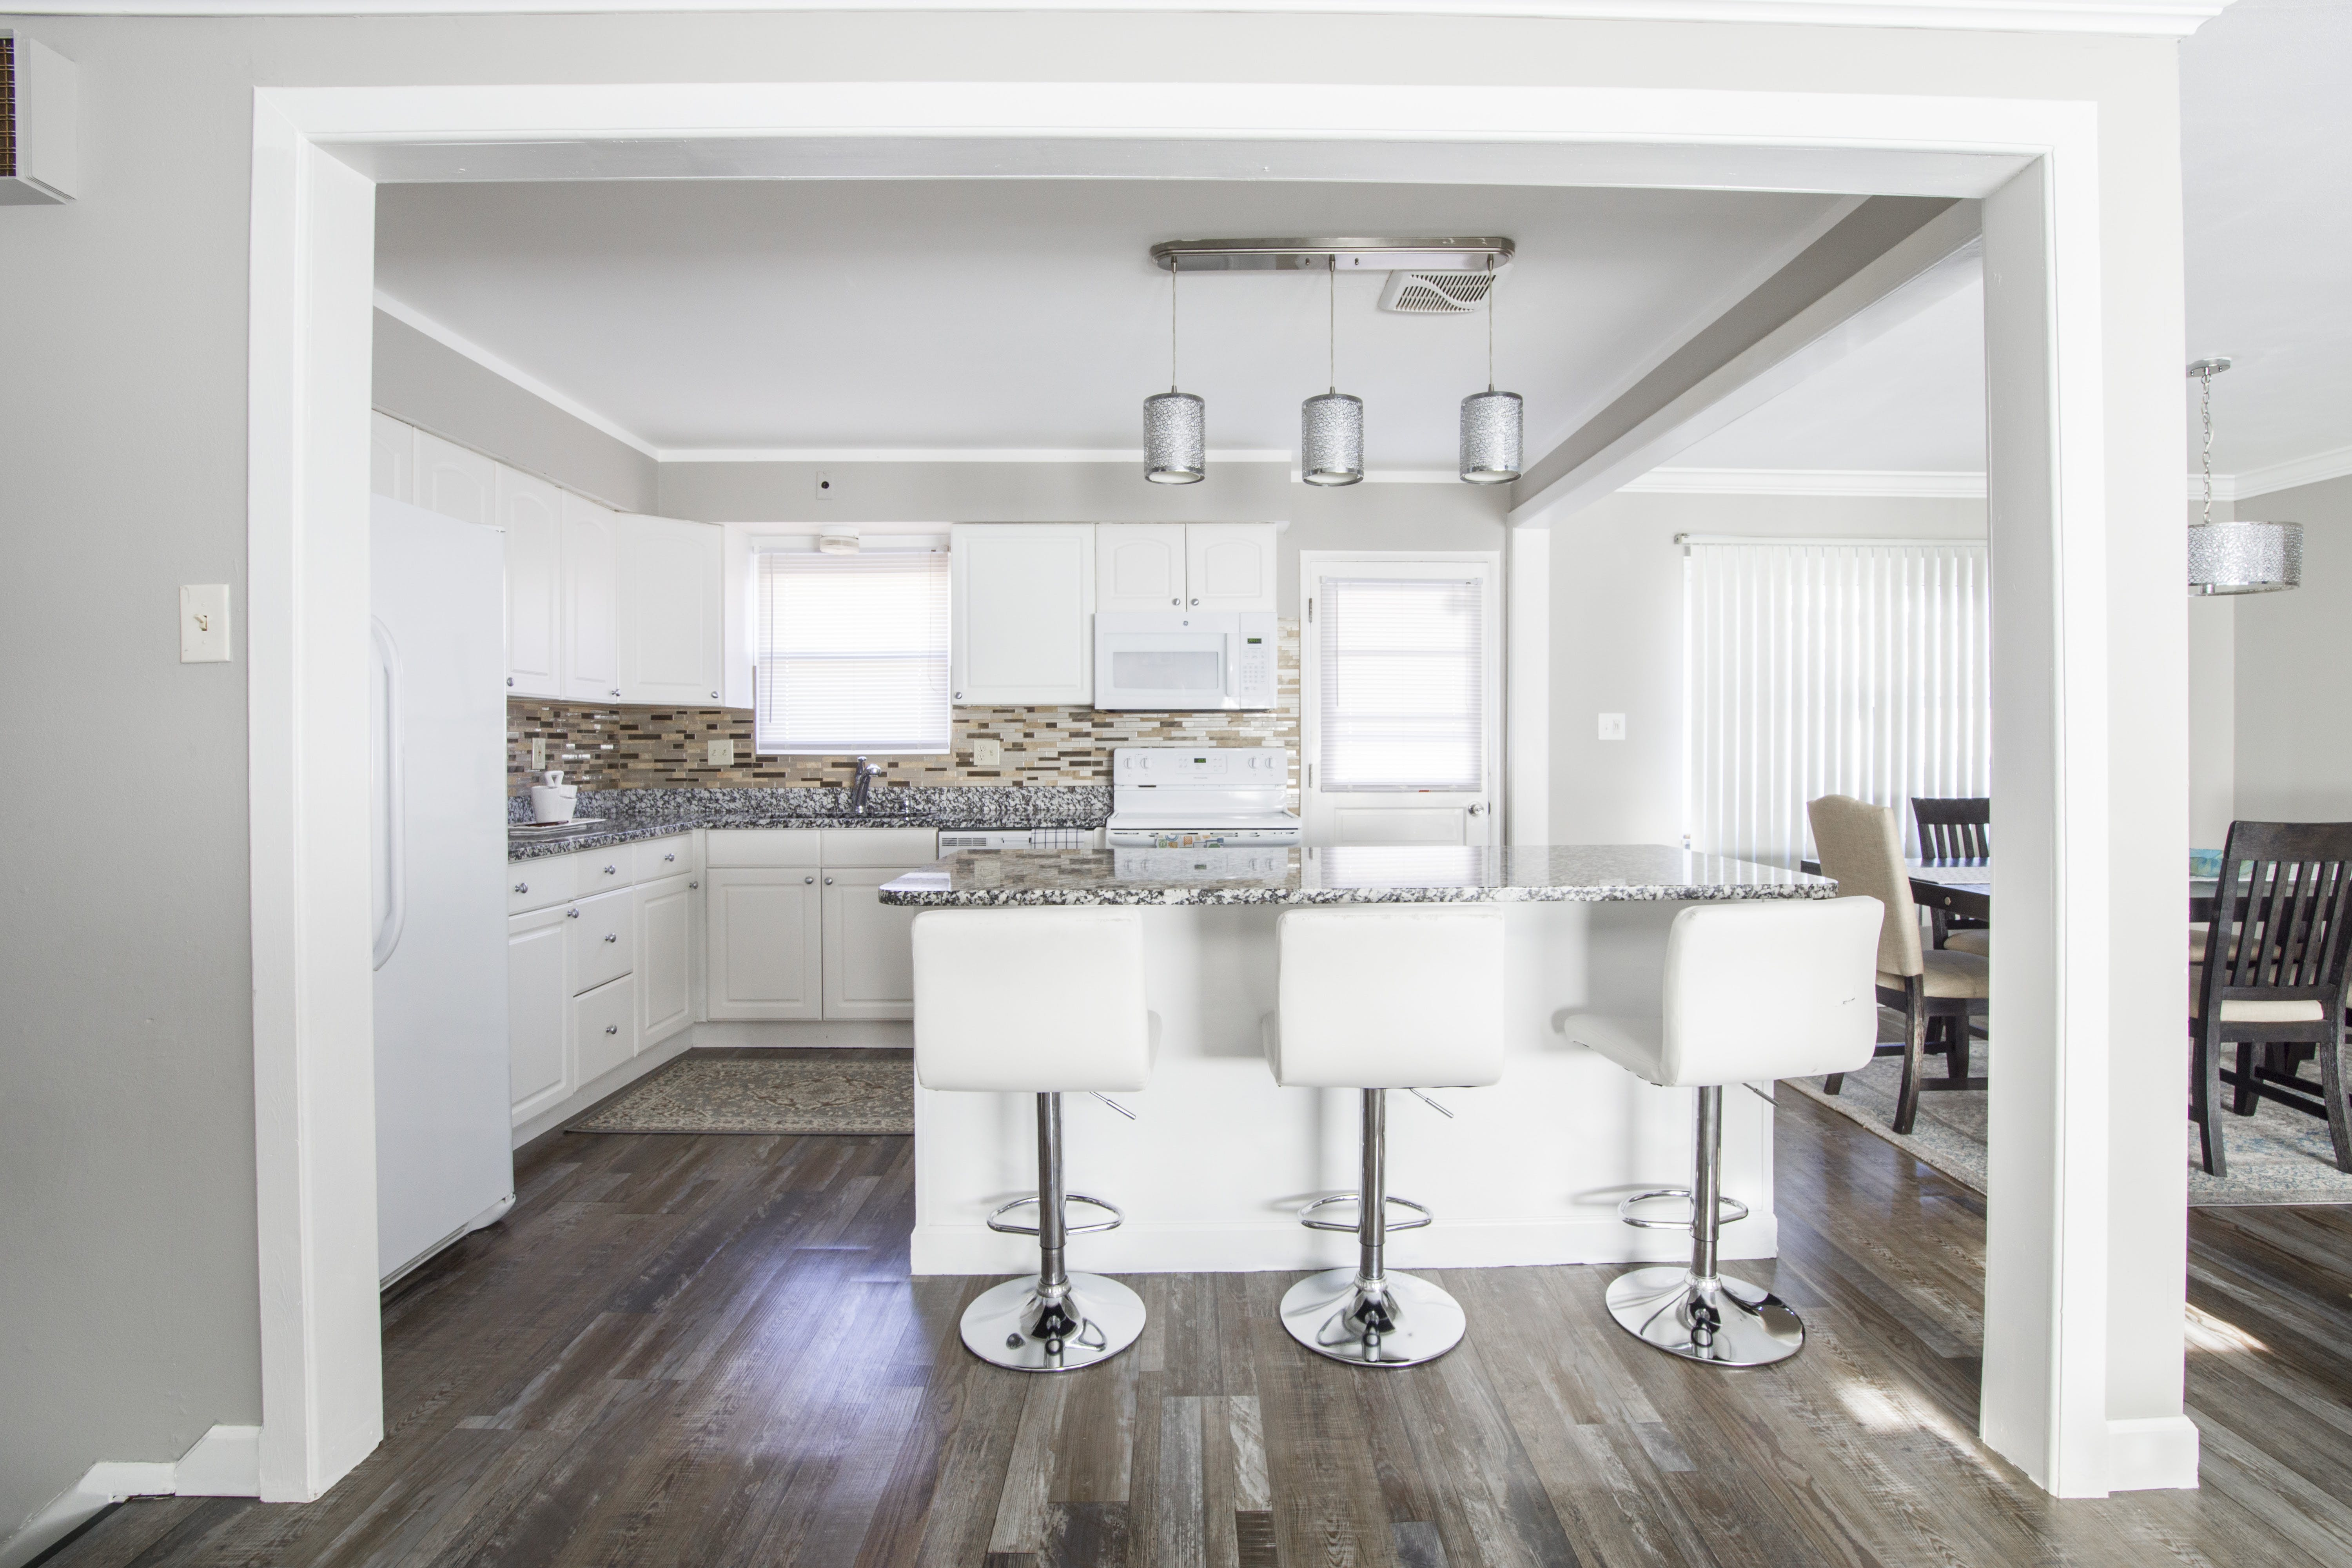 Three White Barstools in Front of Kitchen Island